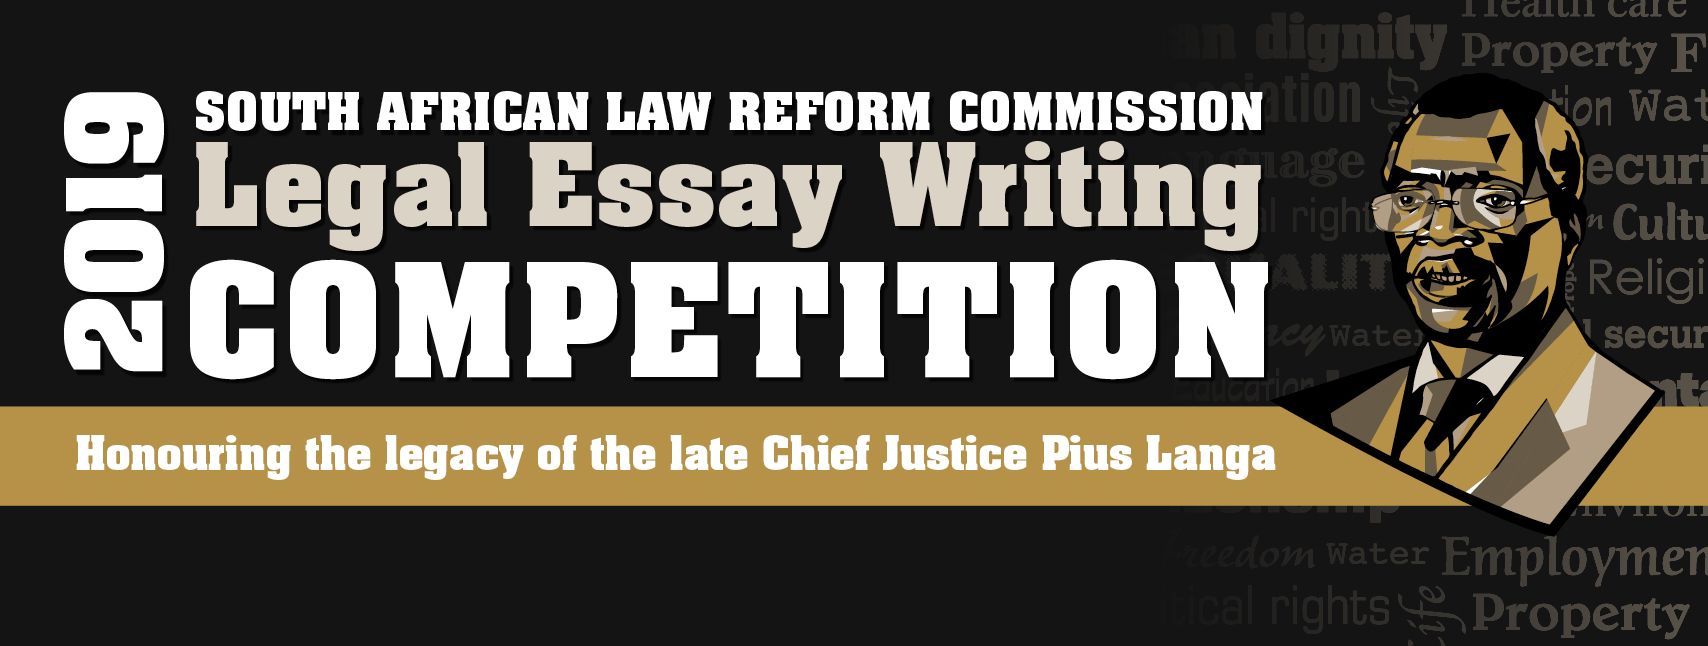 South African Law Reform Commission Legal Essay Composing Competitors 2019 (R70,000 reward)